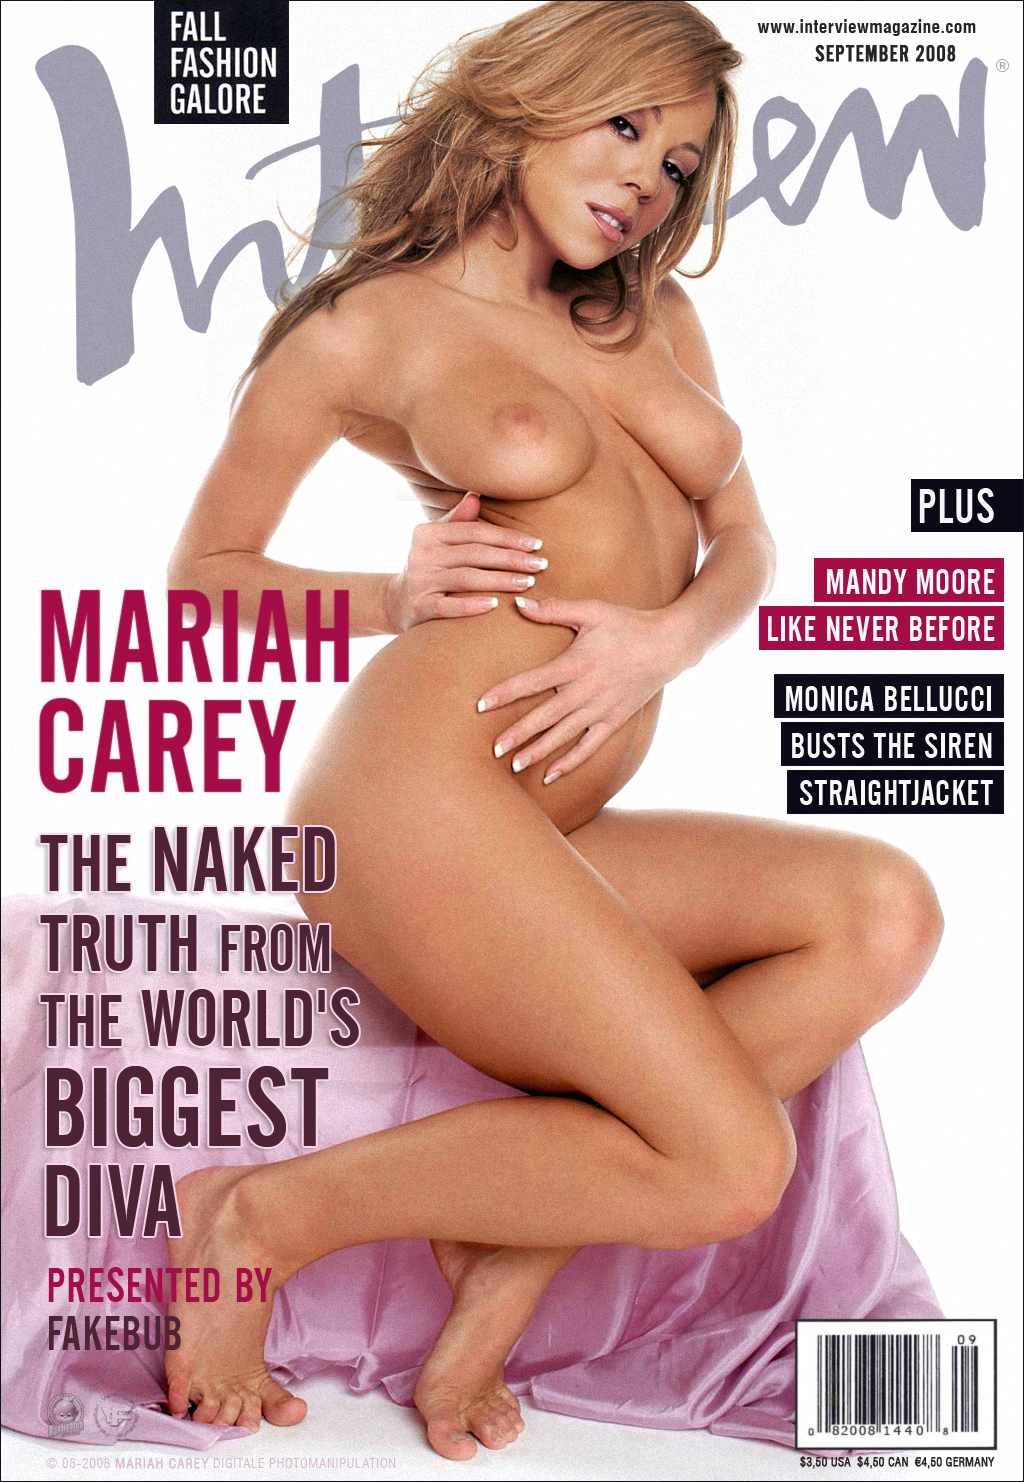 Suggest you Mariah carey rubbing pussy join